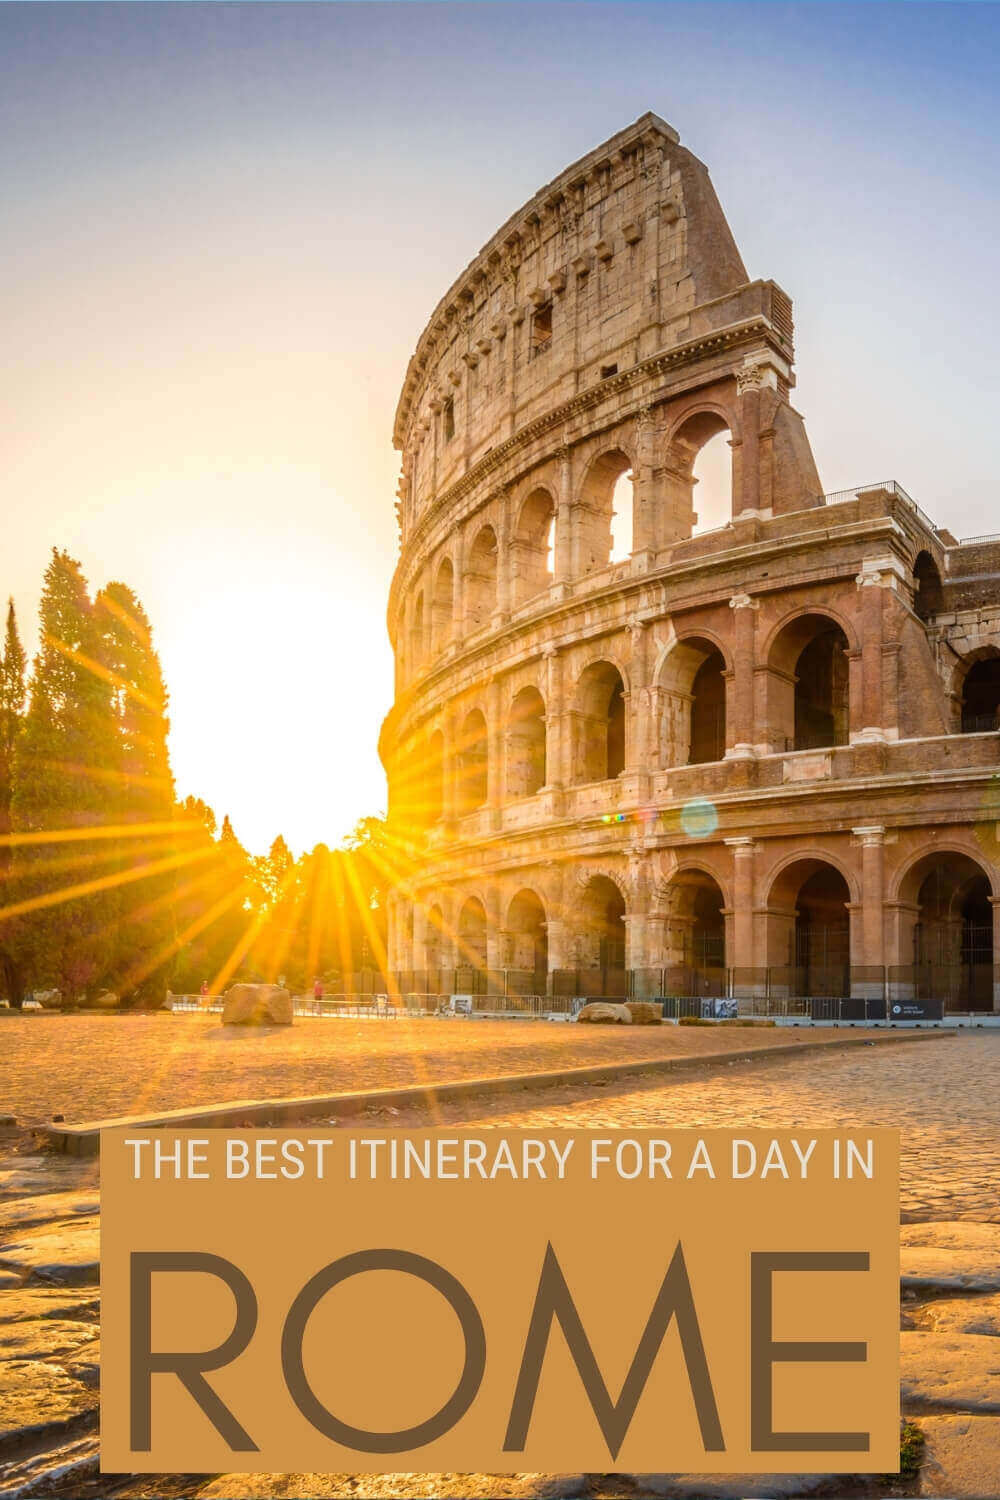 Discover how to make the most of a day in Rome - via @strictlyrome